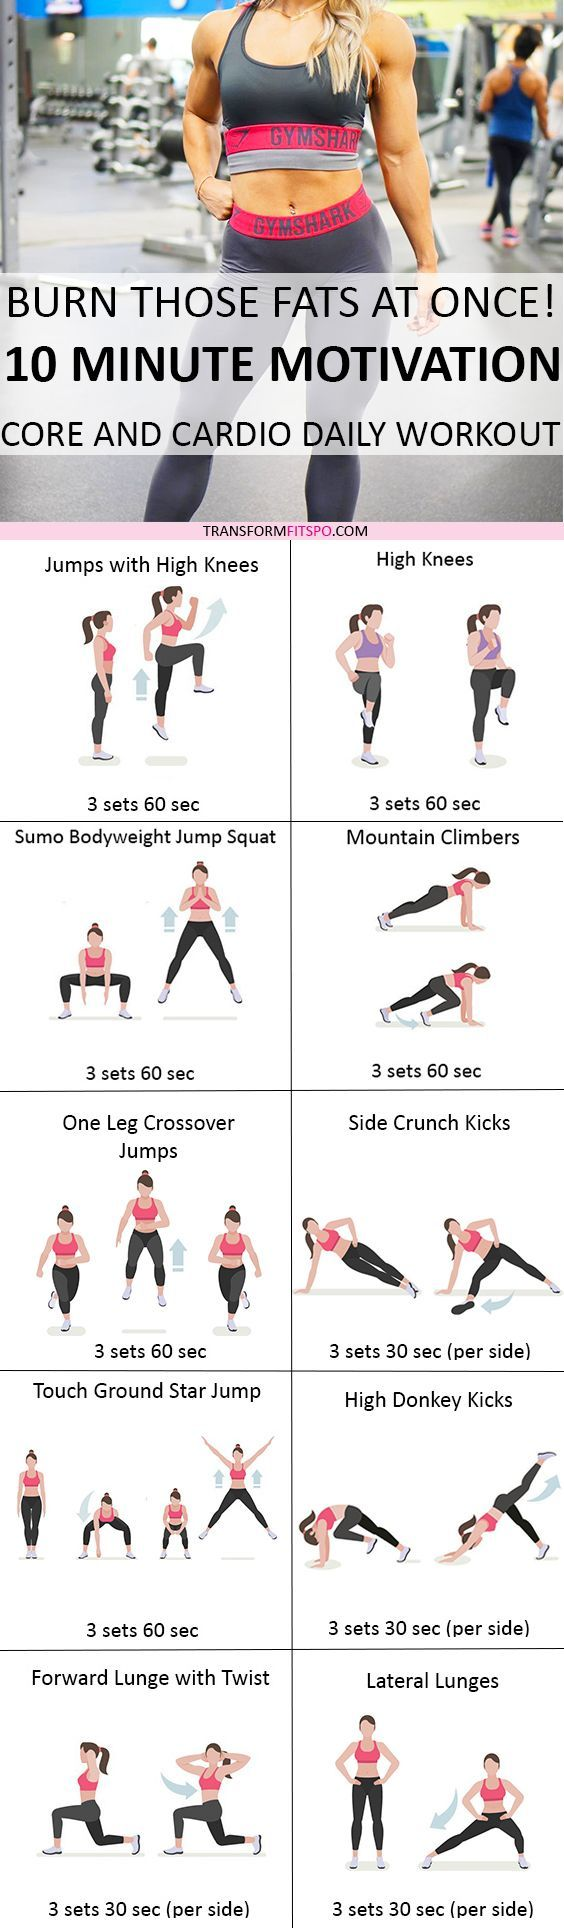 Repin and share if this workout was really effective for you! Read the post for all of the workouts!